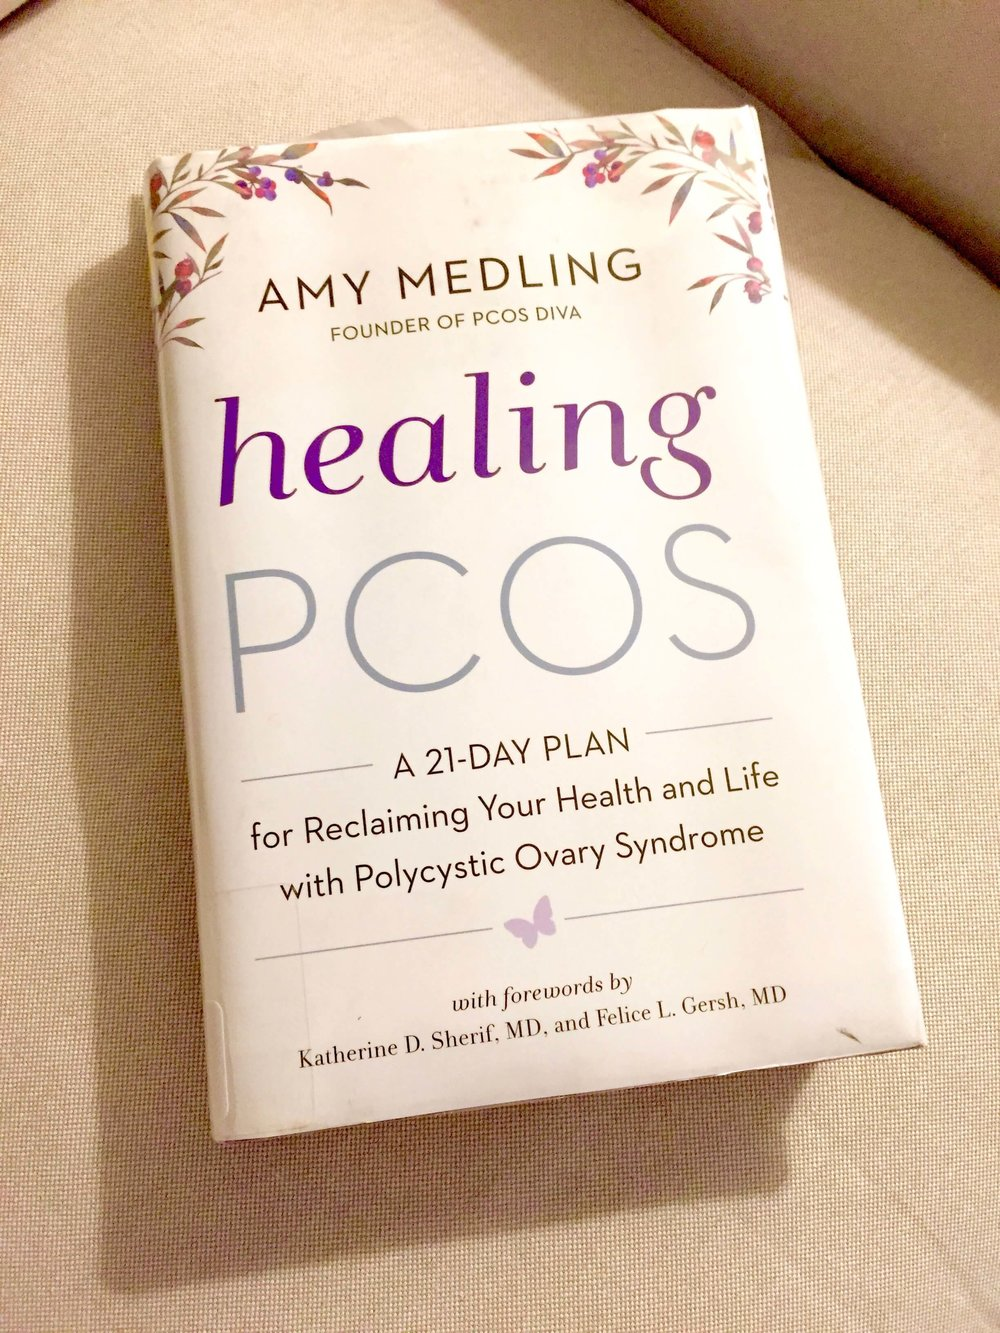 Healing PCOS Book Review // PCOS Diva Healing PCOS // How to heal Polycystic Ovary Syndrome // Healing PCOS Naturally // PCOS Resources // Books about PCOS |  PCOSLiving.com  #pcos #bookreview